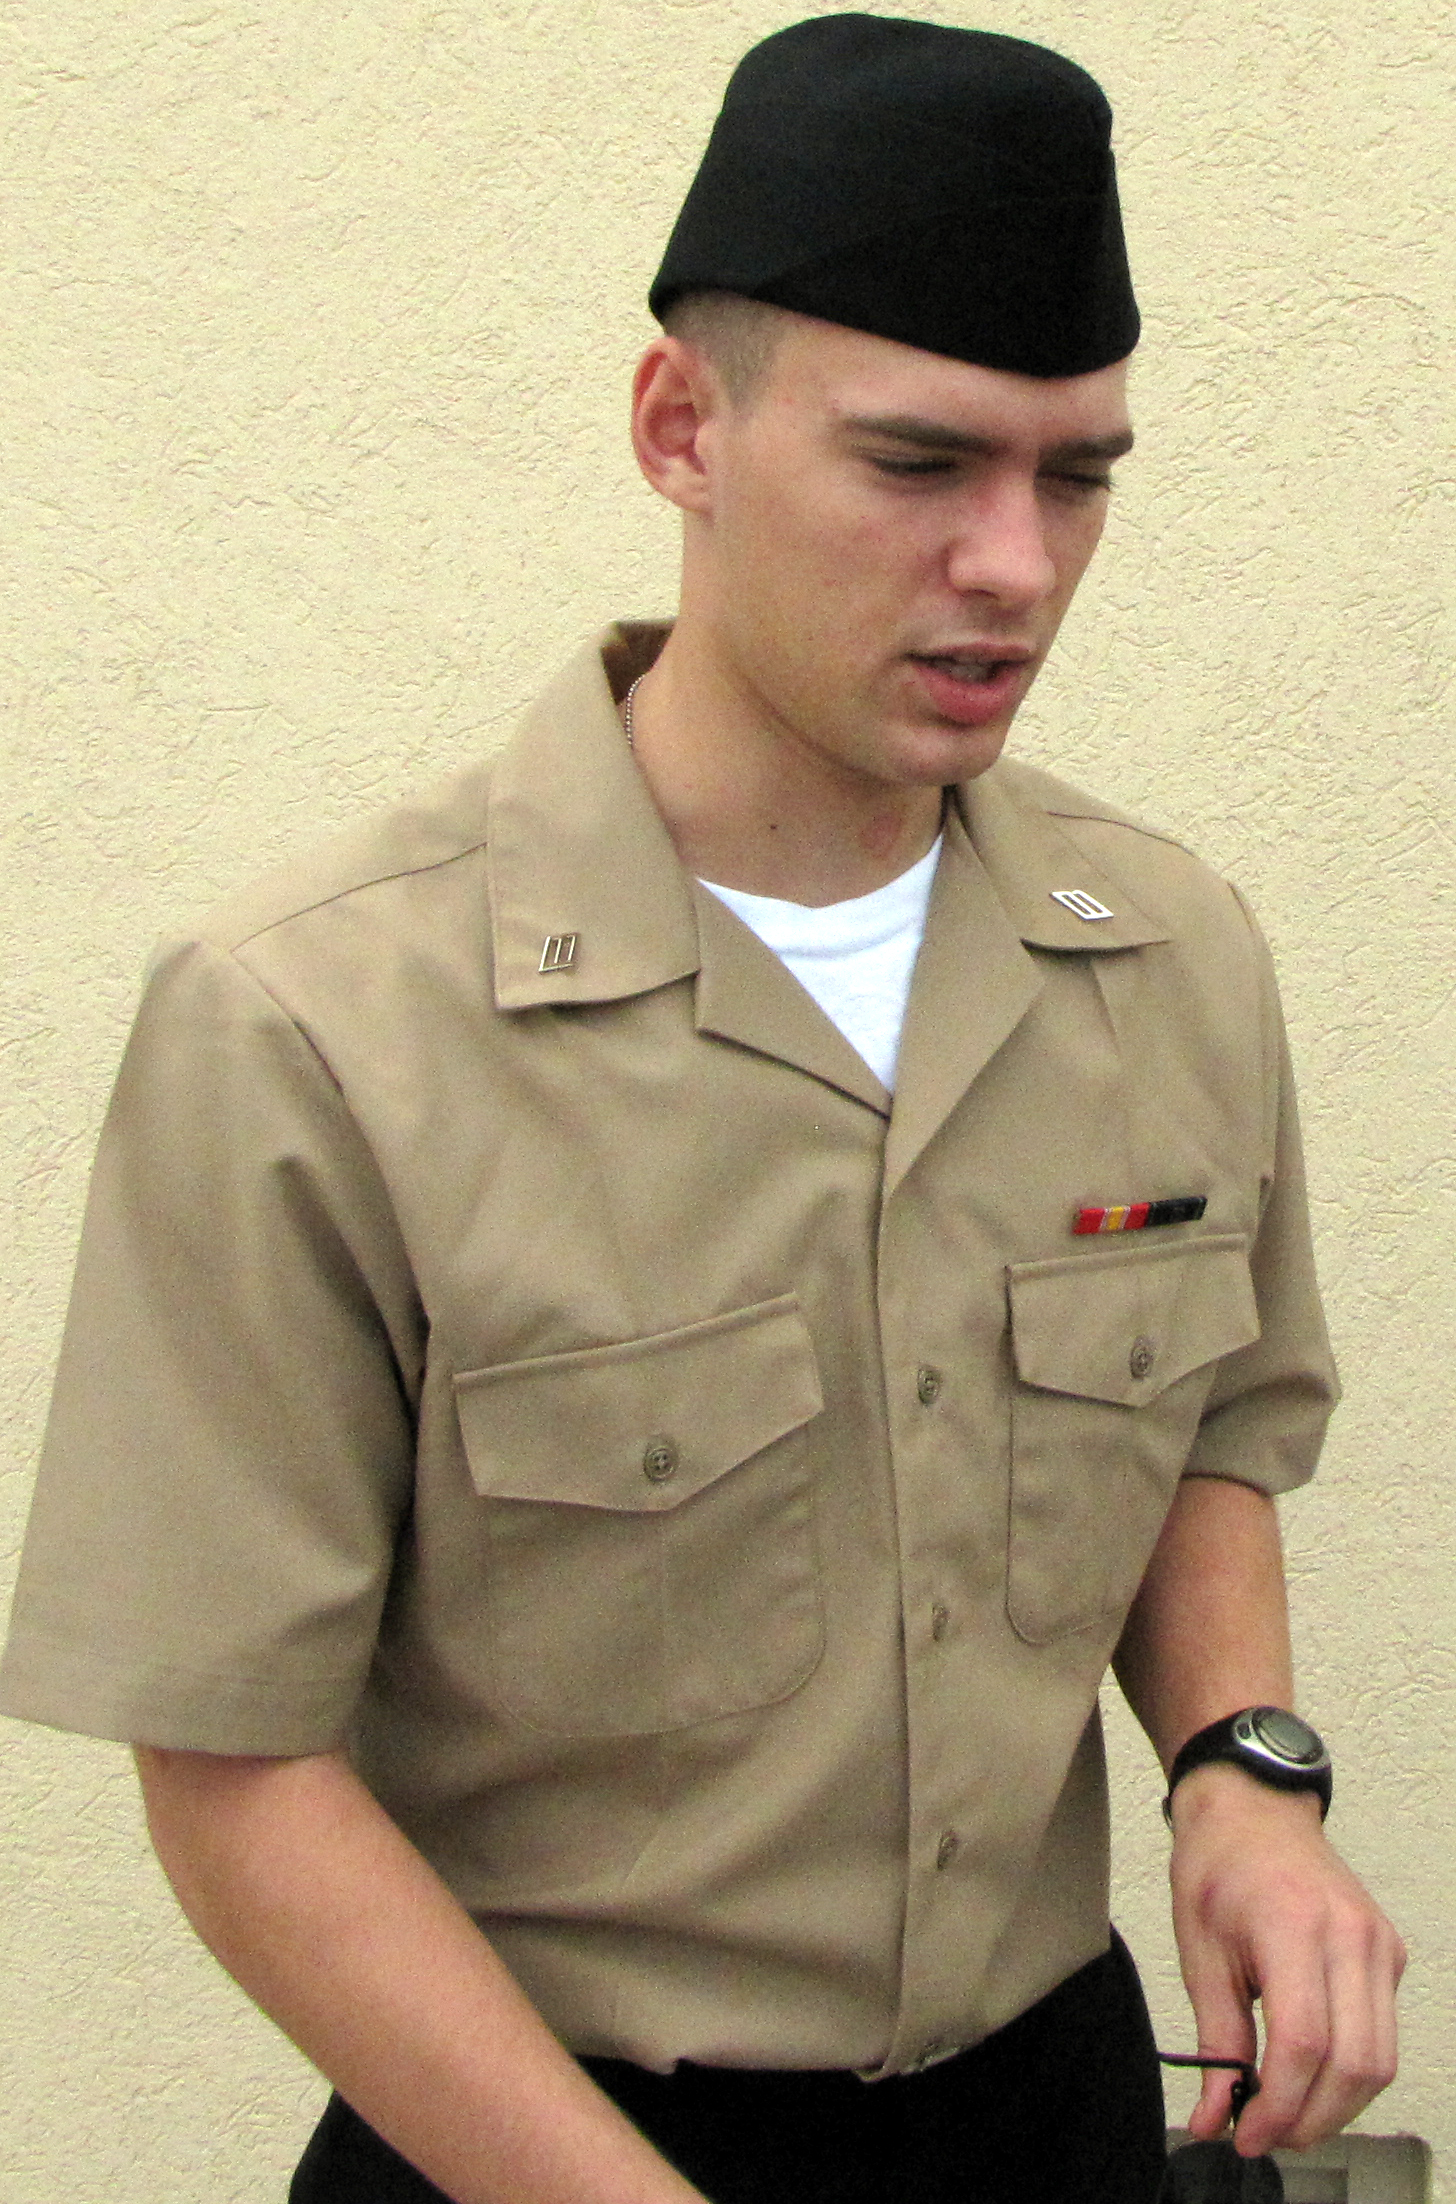 Photo: Service Uniform at PIR.